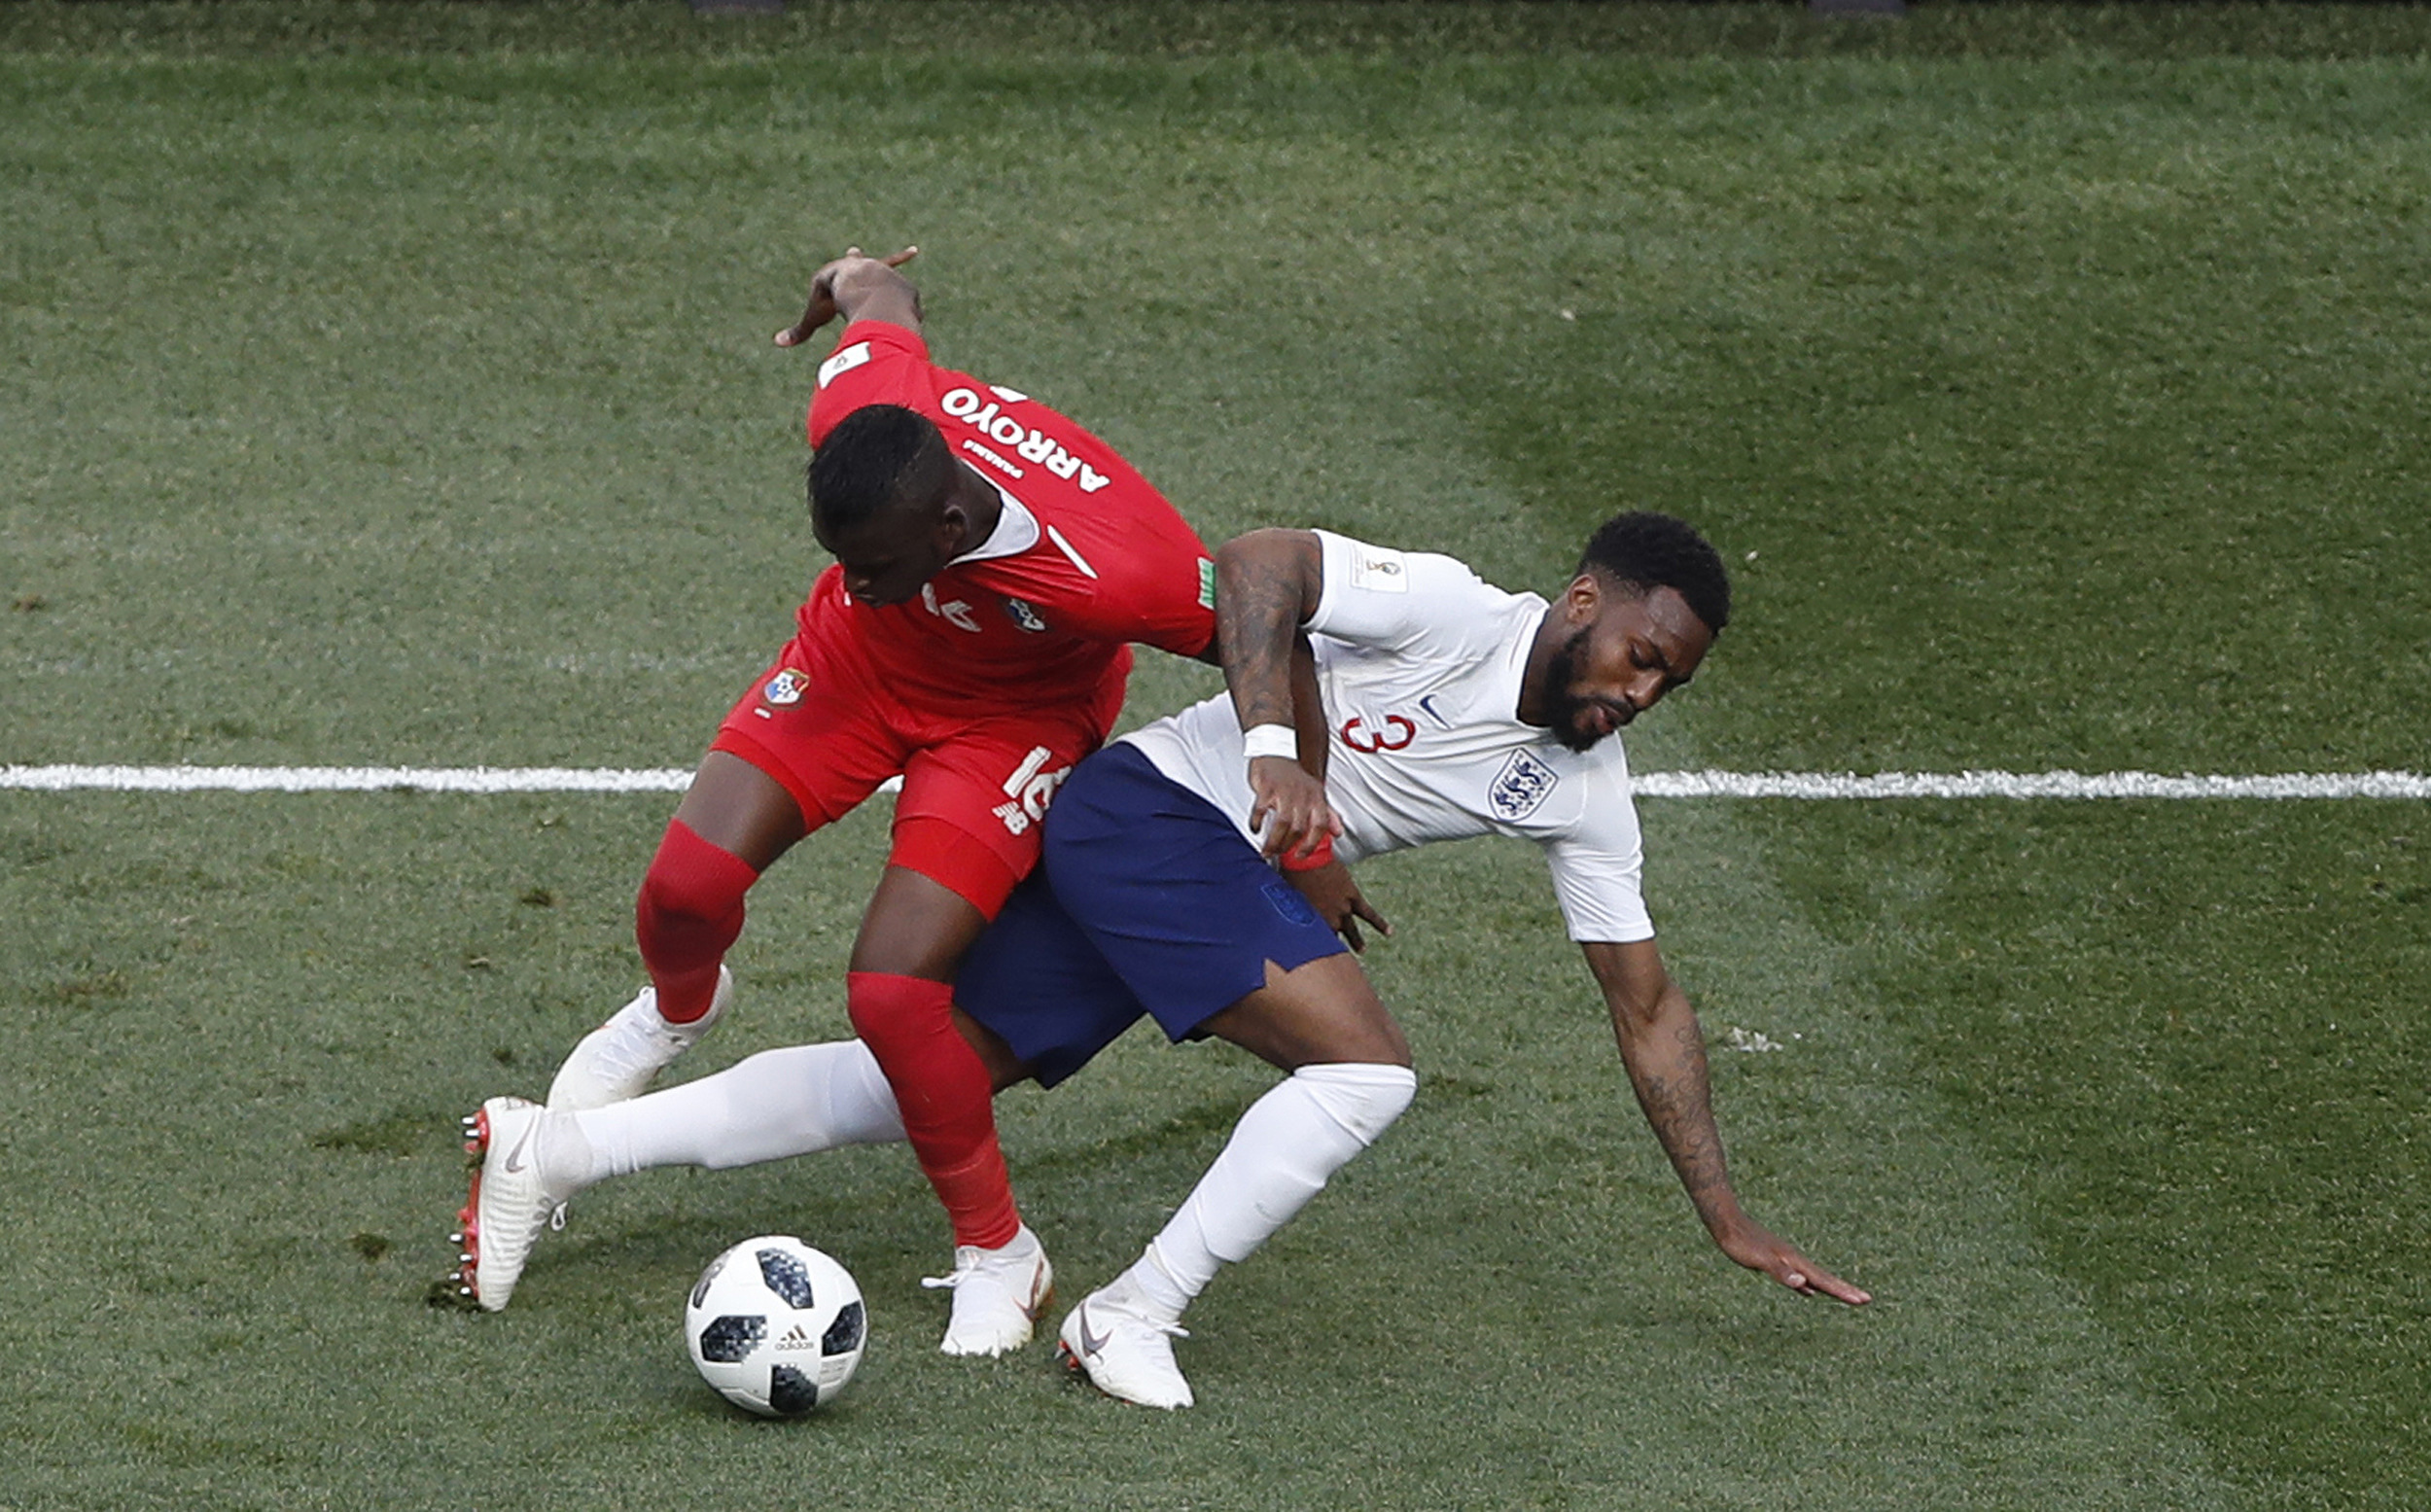 "<div class=""meta image-caption""><div class=""origin-logo origin-image none""><span>none</span></div><span class=""caption-text"">Panama's Abdiel Arroyo, and England's Danny Rose fight for the ball during the group G match at the Nizhny Novgorod Stadium in Nizhny Novgorod, Russia, Sunday, June 24, 2018. (Darko Bandic/AP Photo)</span></div>"